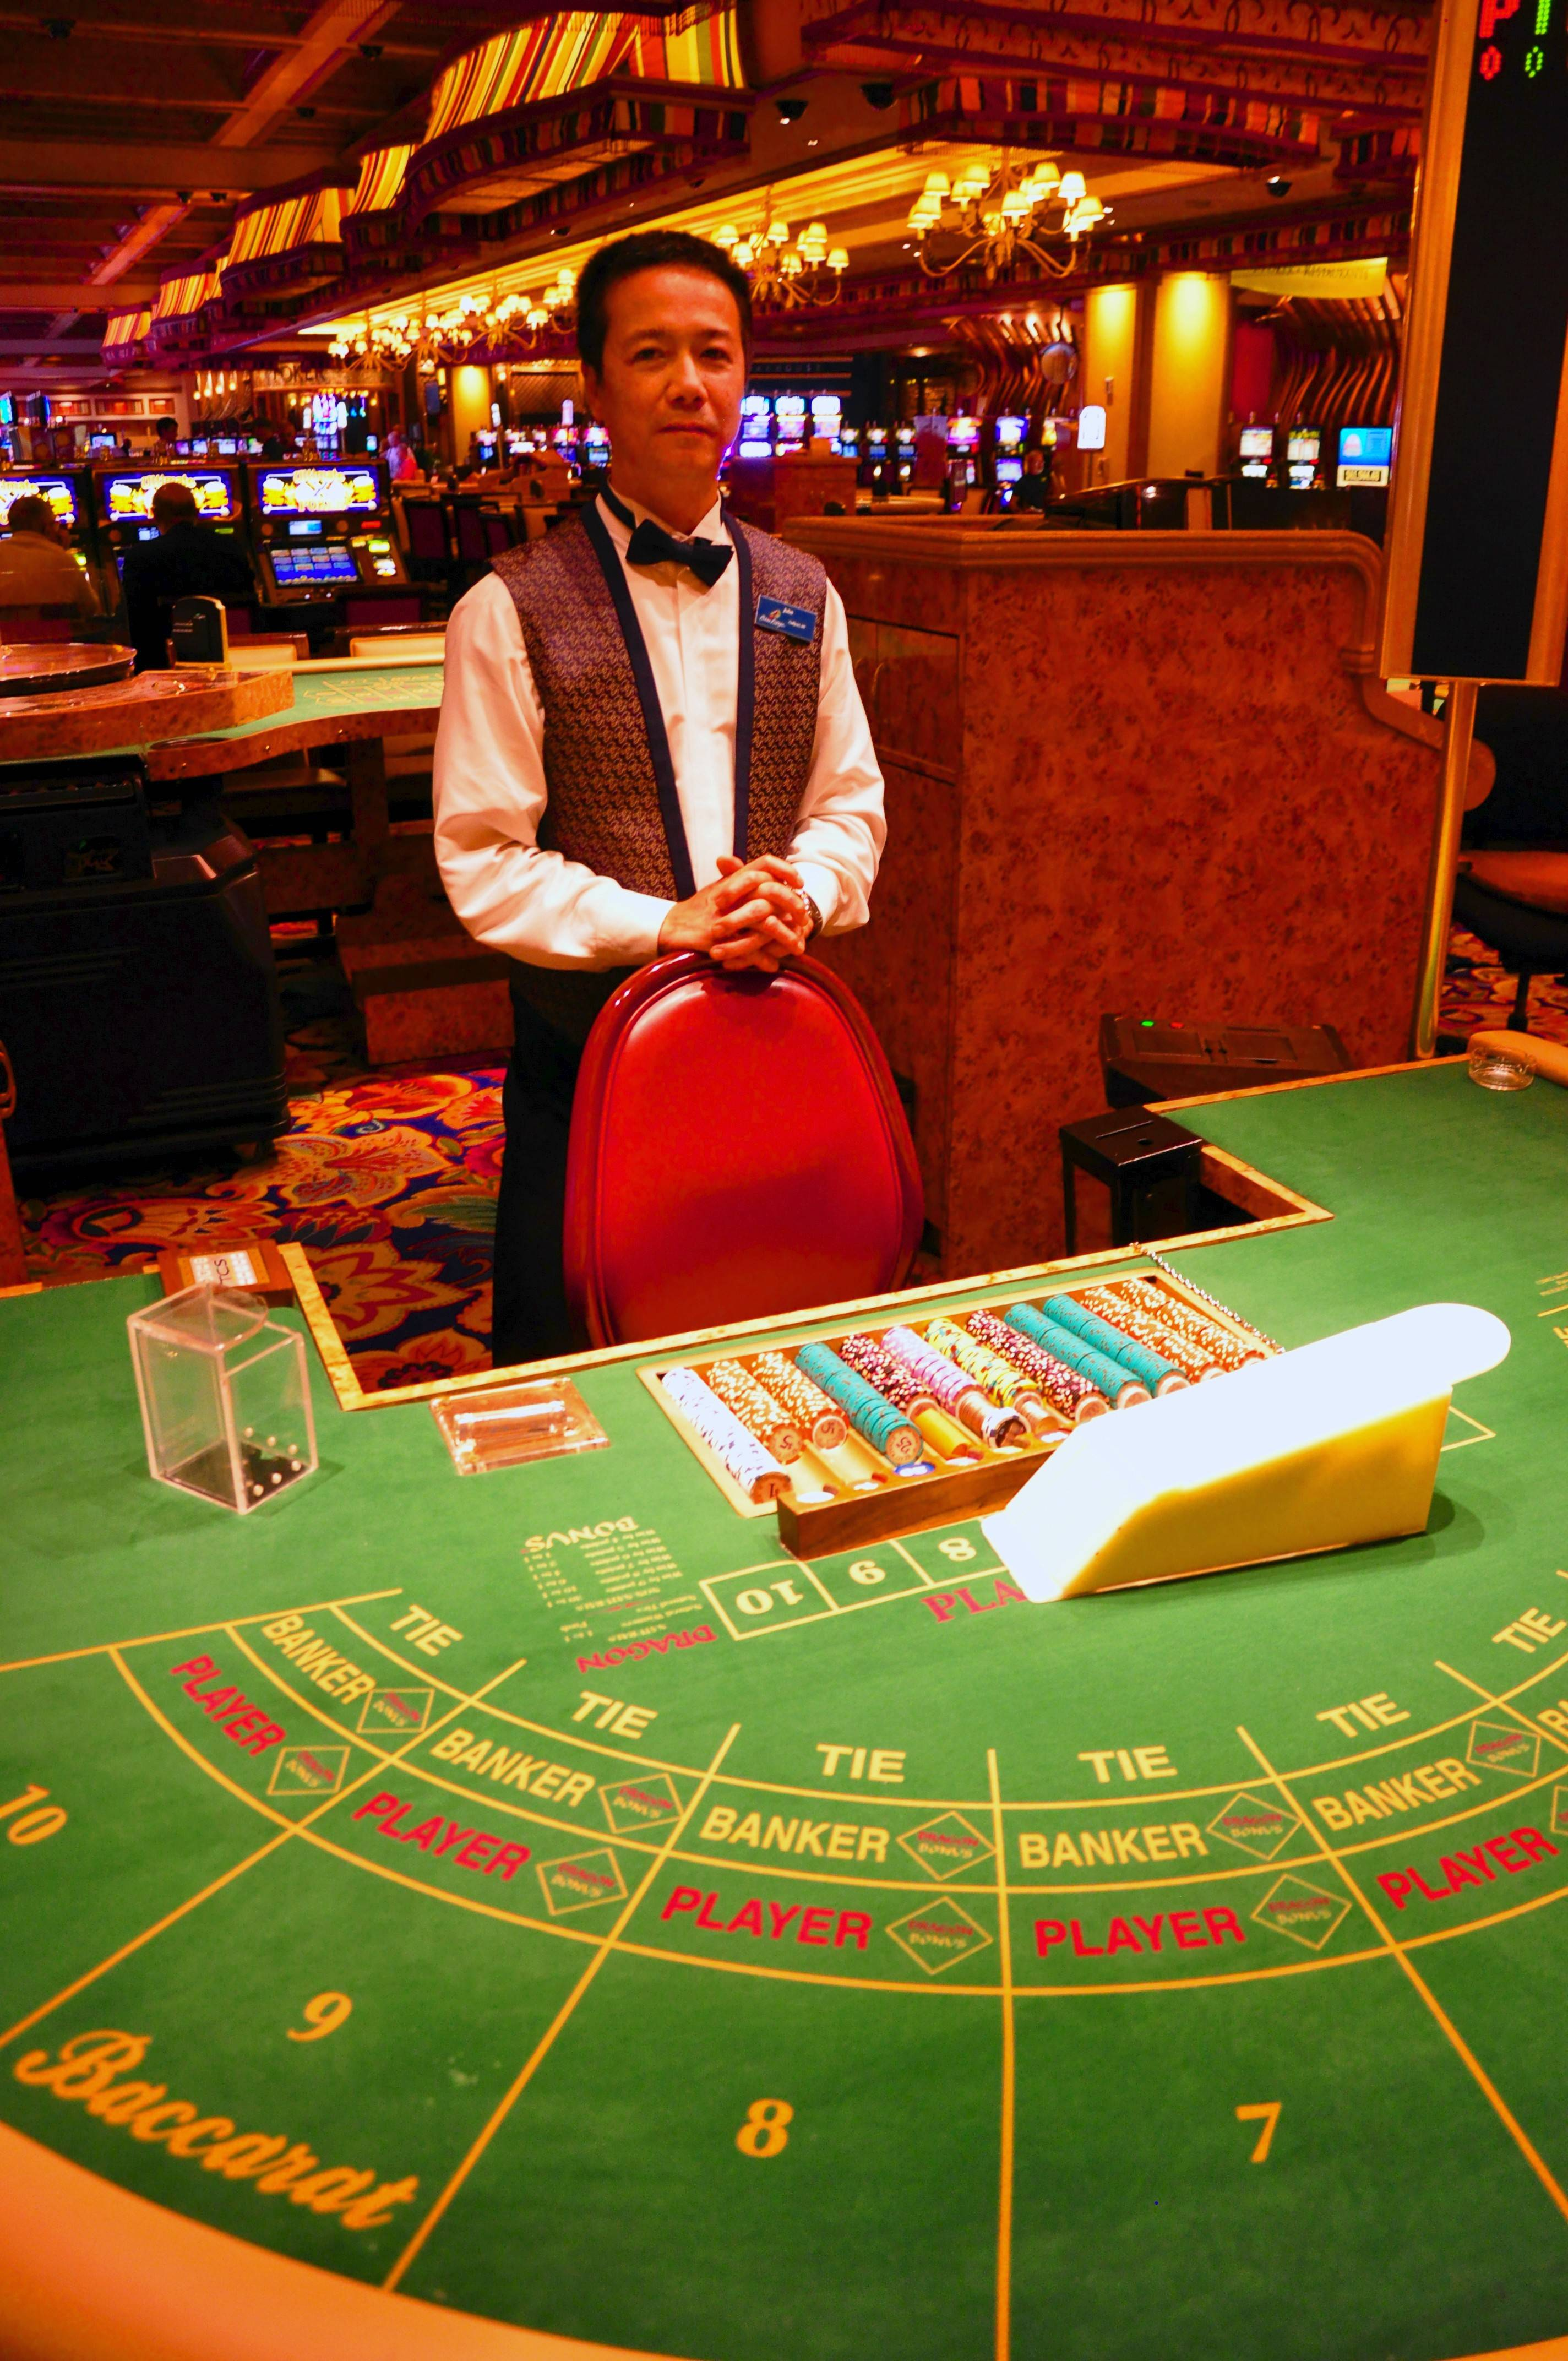 A dozen casinos draw visitors to the Mississippi Gulf Coast, but the area has much more to offer than gambling.